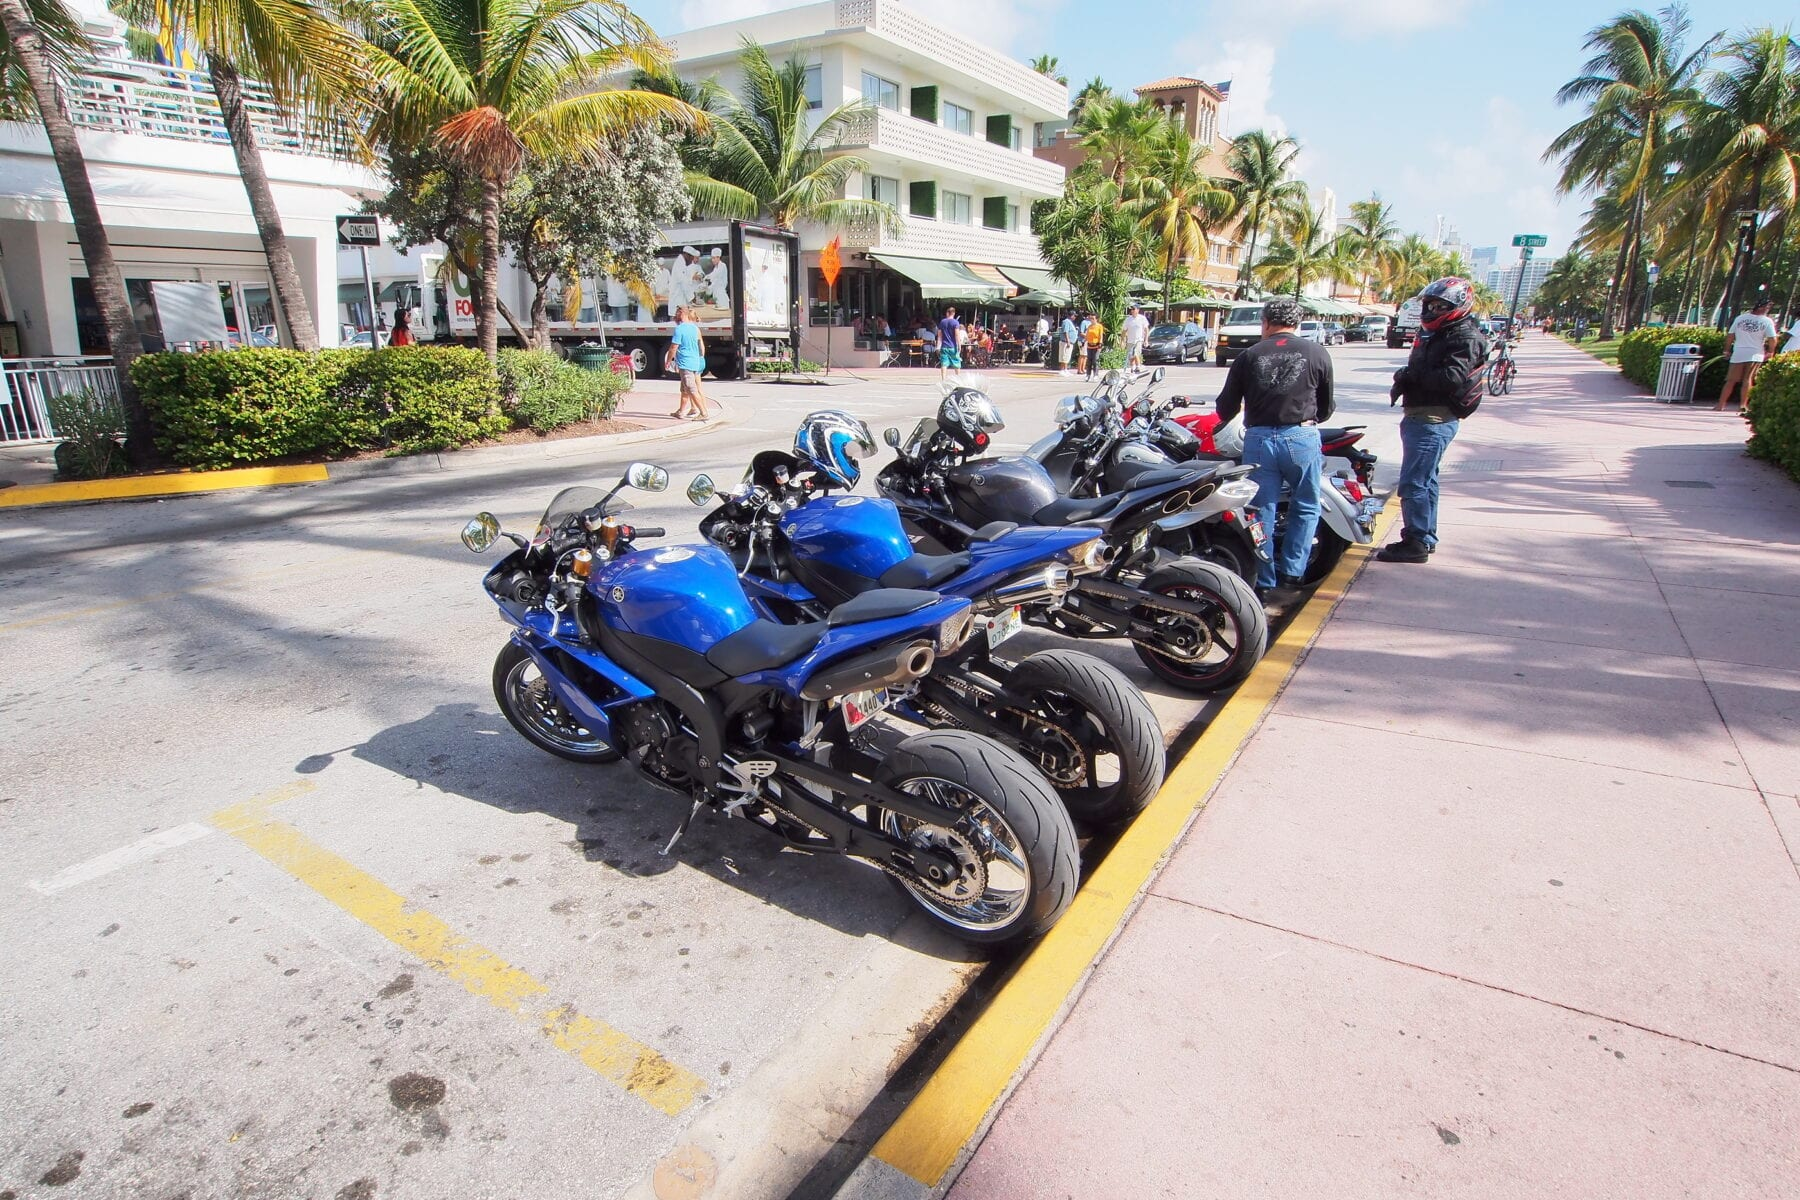 Many people find riding motorcycles in Florida a great experience. ©BigStockPhoto